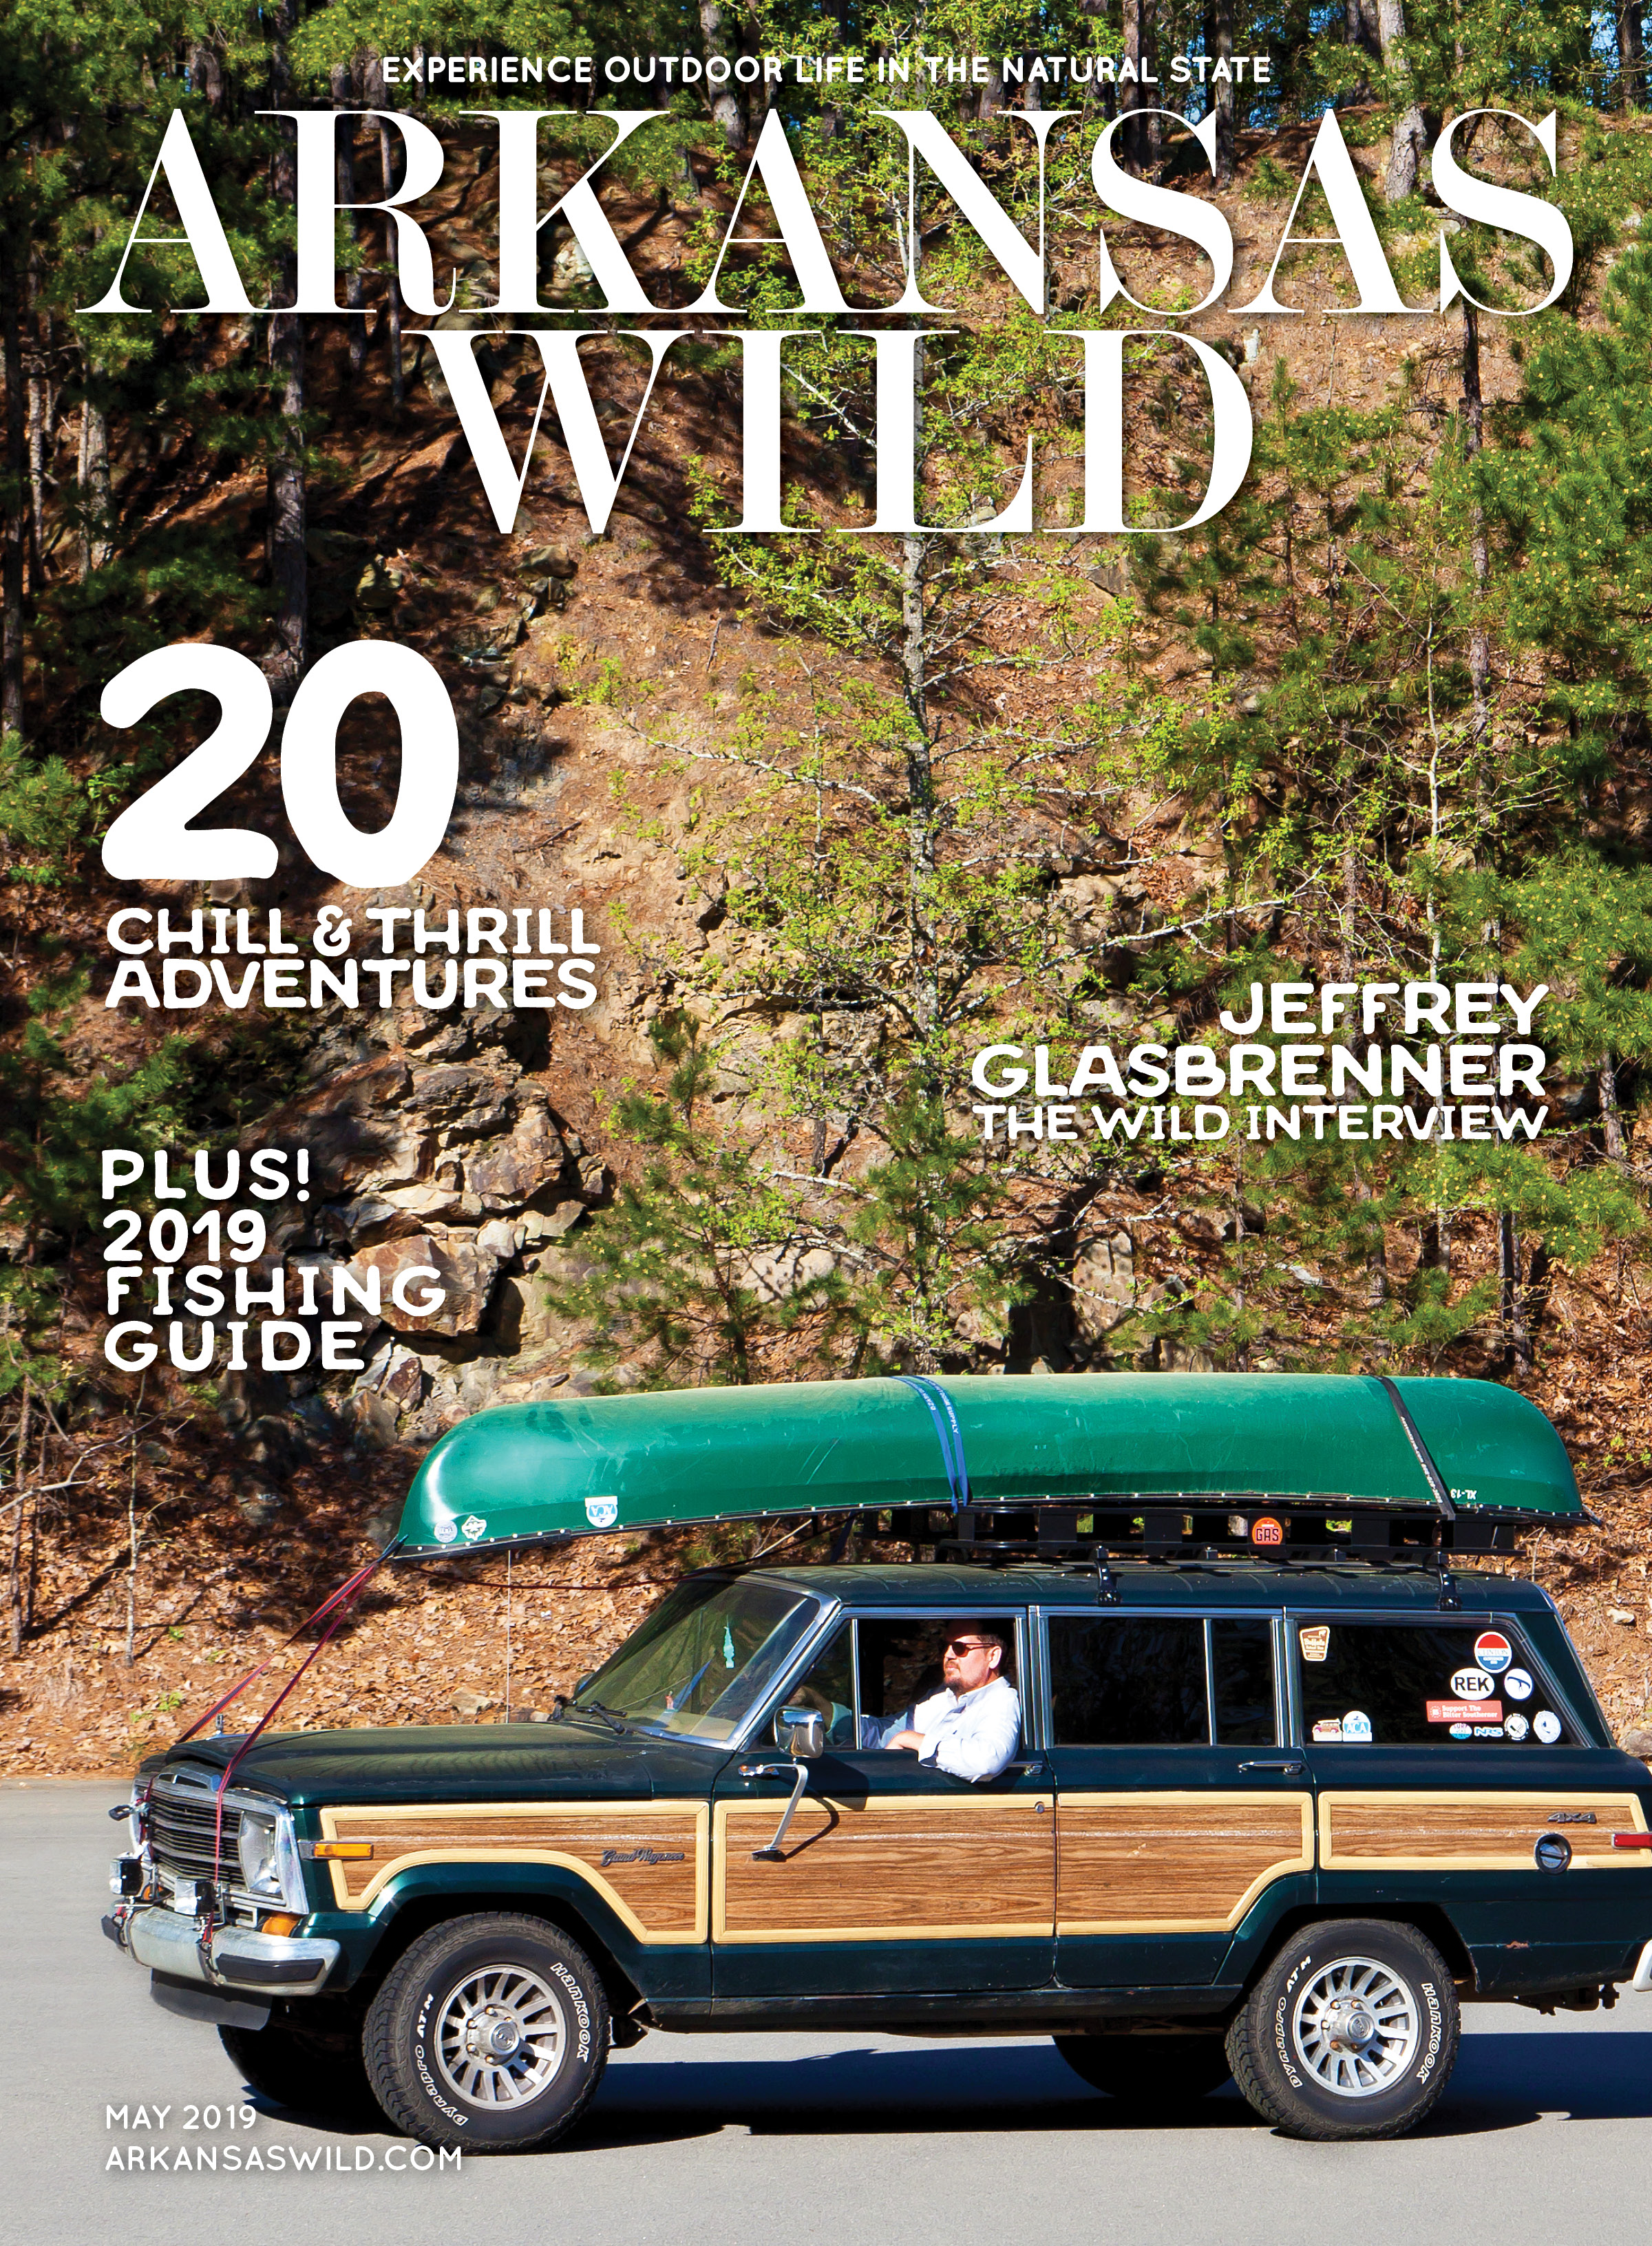 Arkansas Wild May 2019 cover.jpg